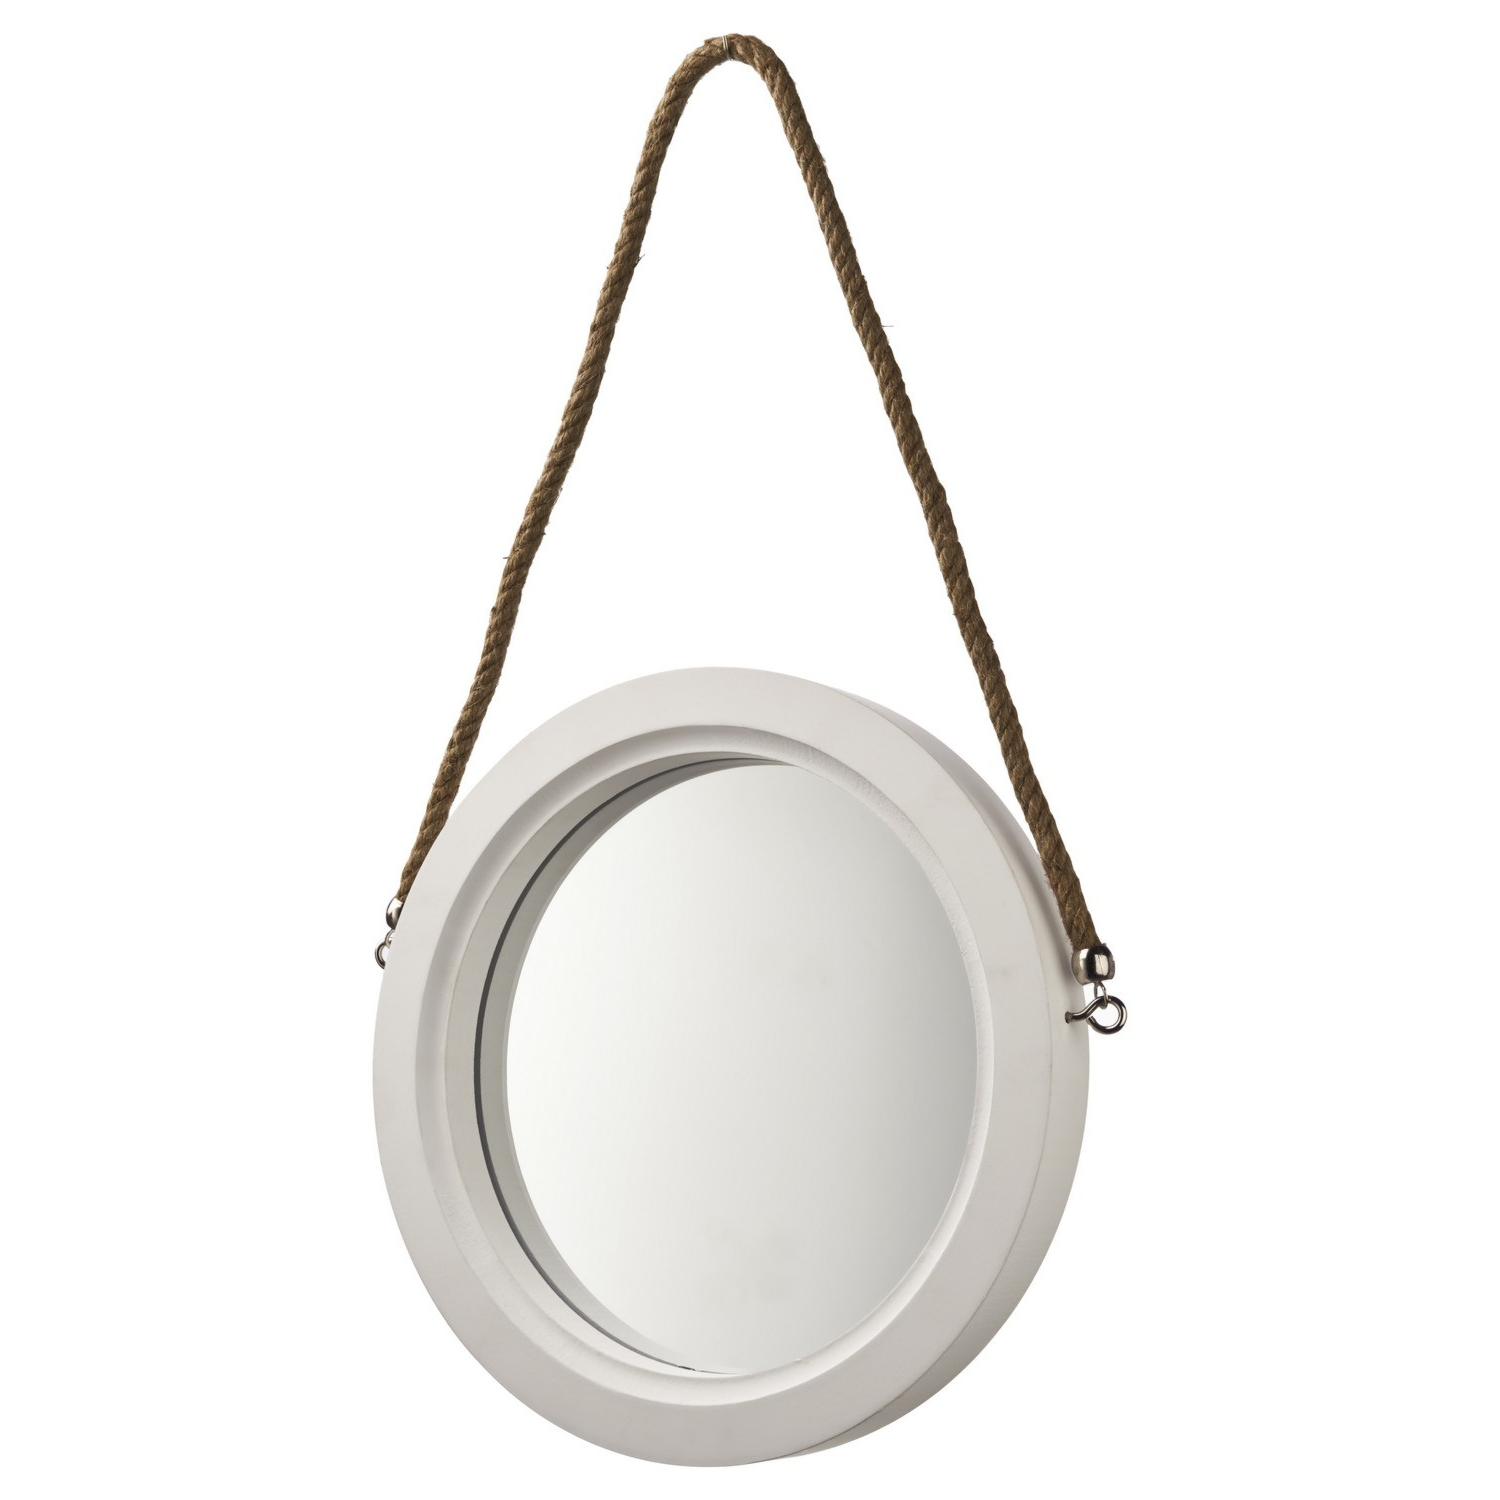 Most Recent Porthole Wall Mirrors With Regard To Wooden Porthole Mirror (View 18 of 20)